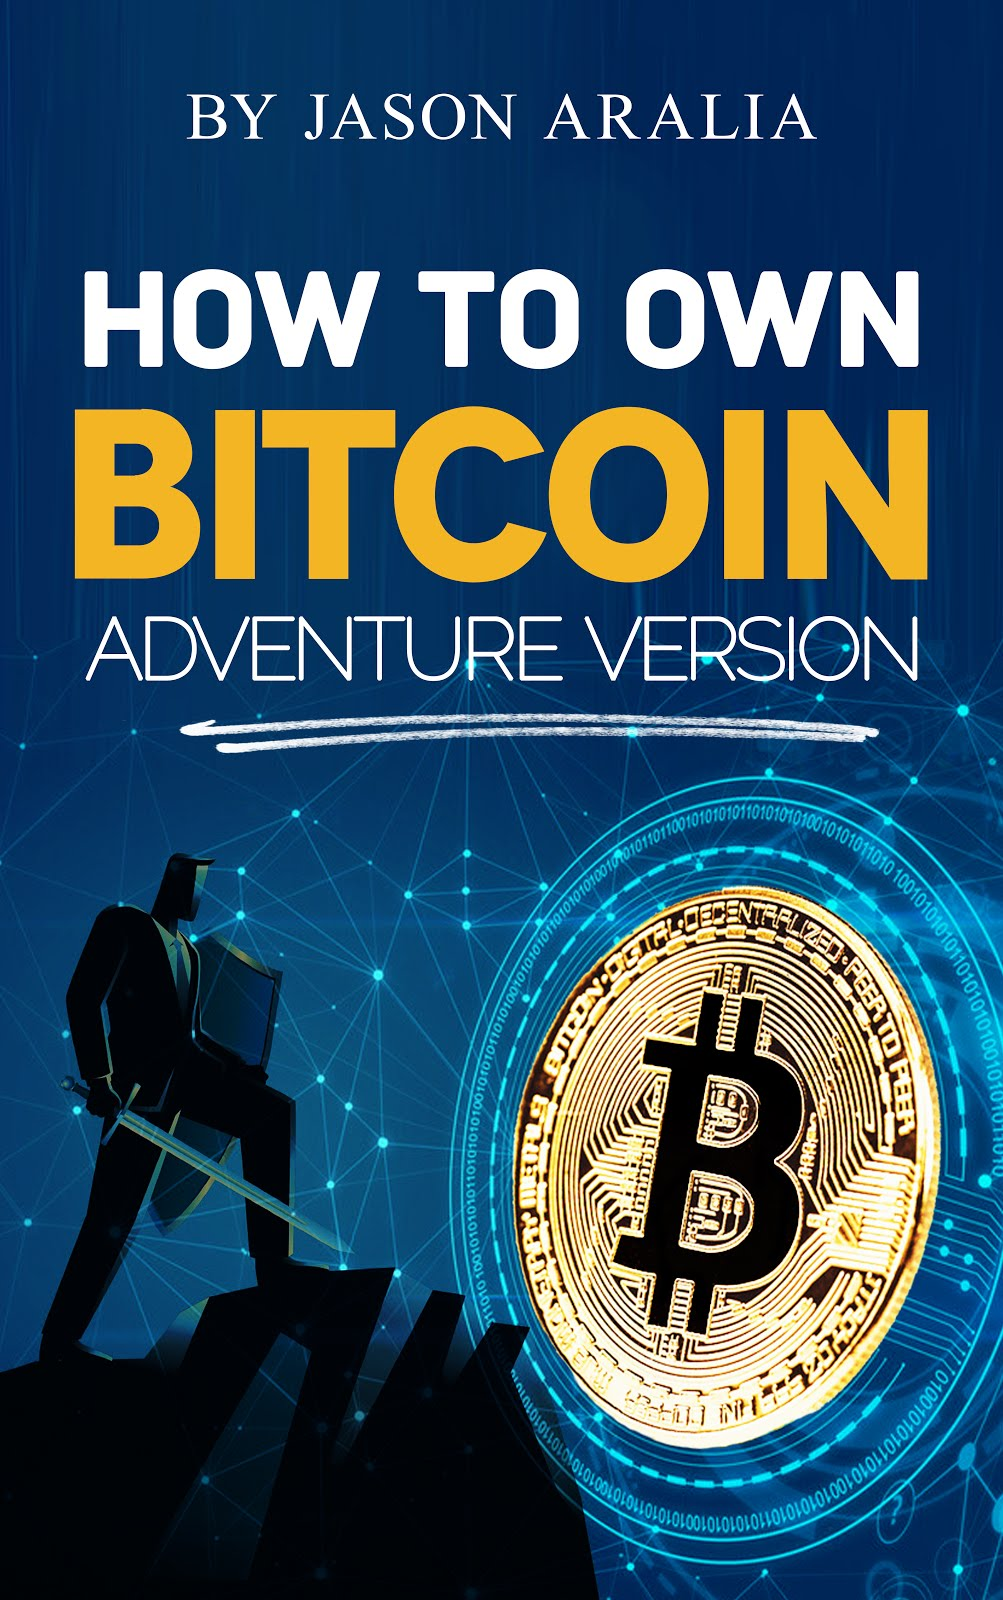 BITCOIN! LEARN ABOUT IT HERE